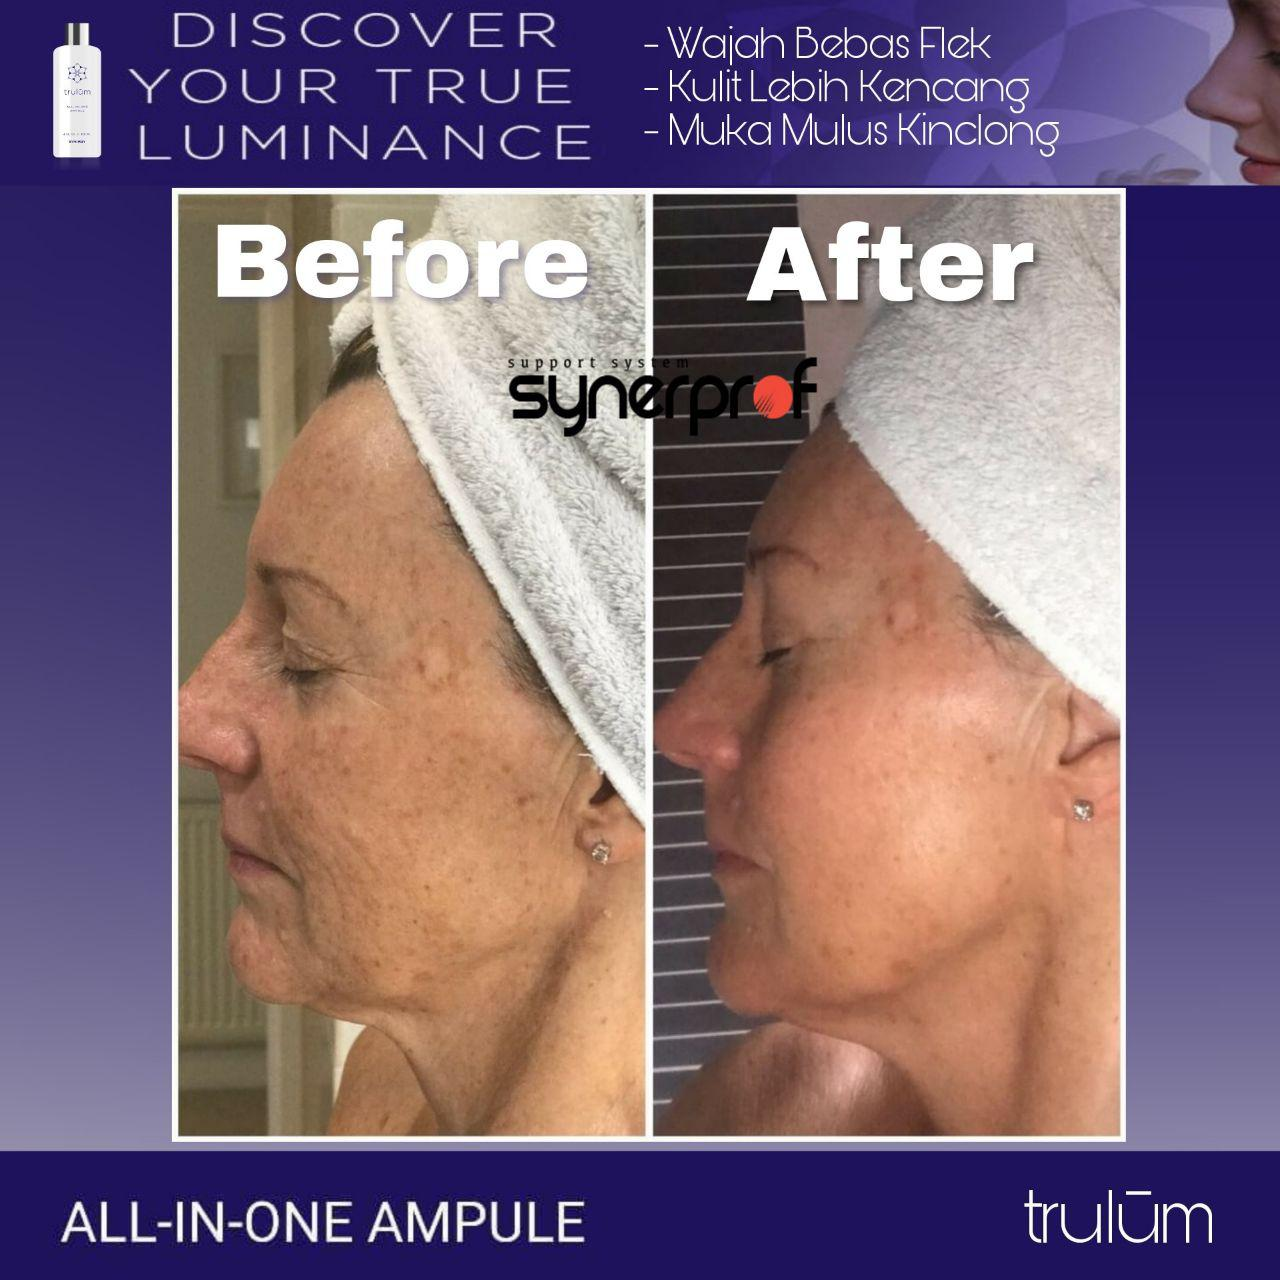 Jual Trulum All In One Ampoule Di Bandar Baru WA: 08112338376